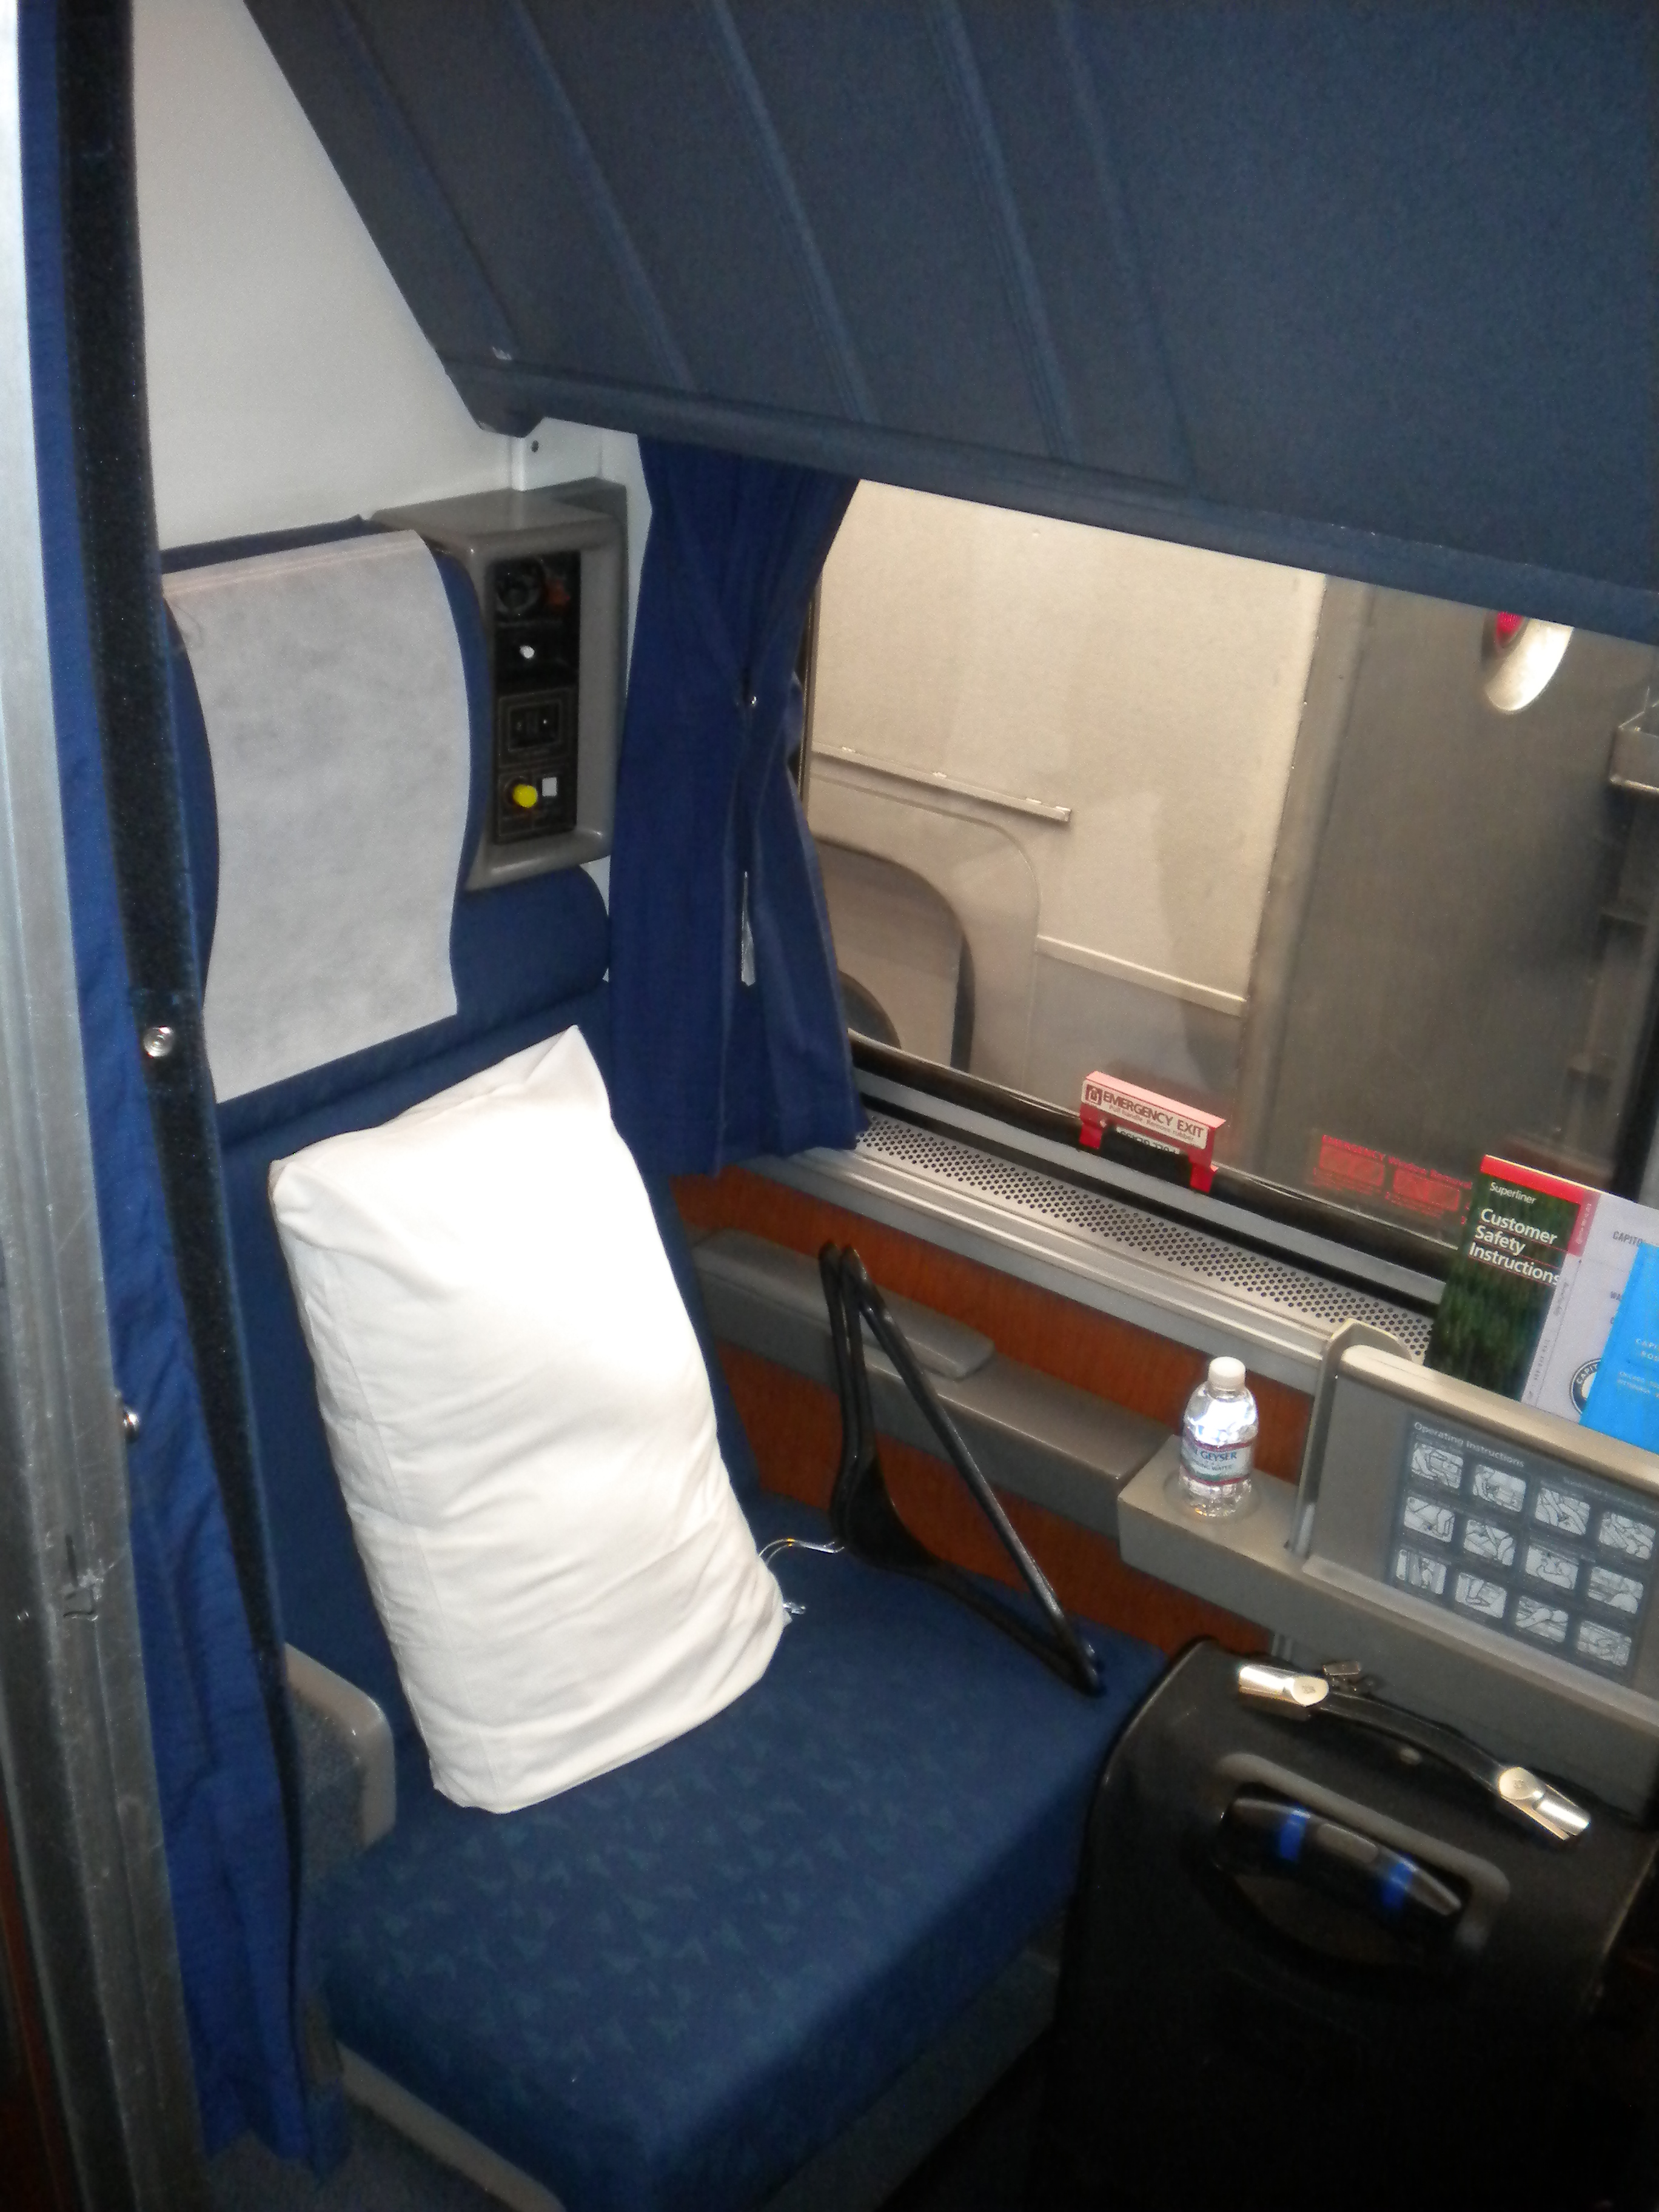 Amtrak Roomette Displaying 20 Images For Amtrak Roomette Toolbar